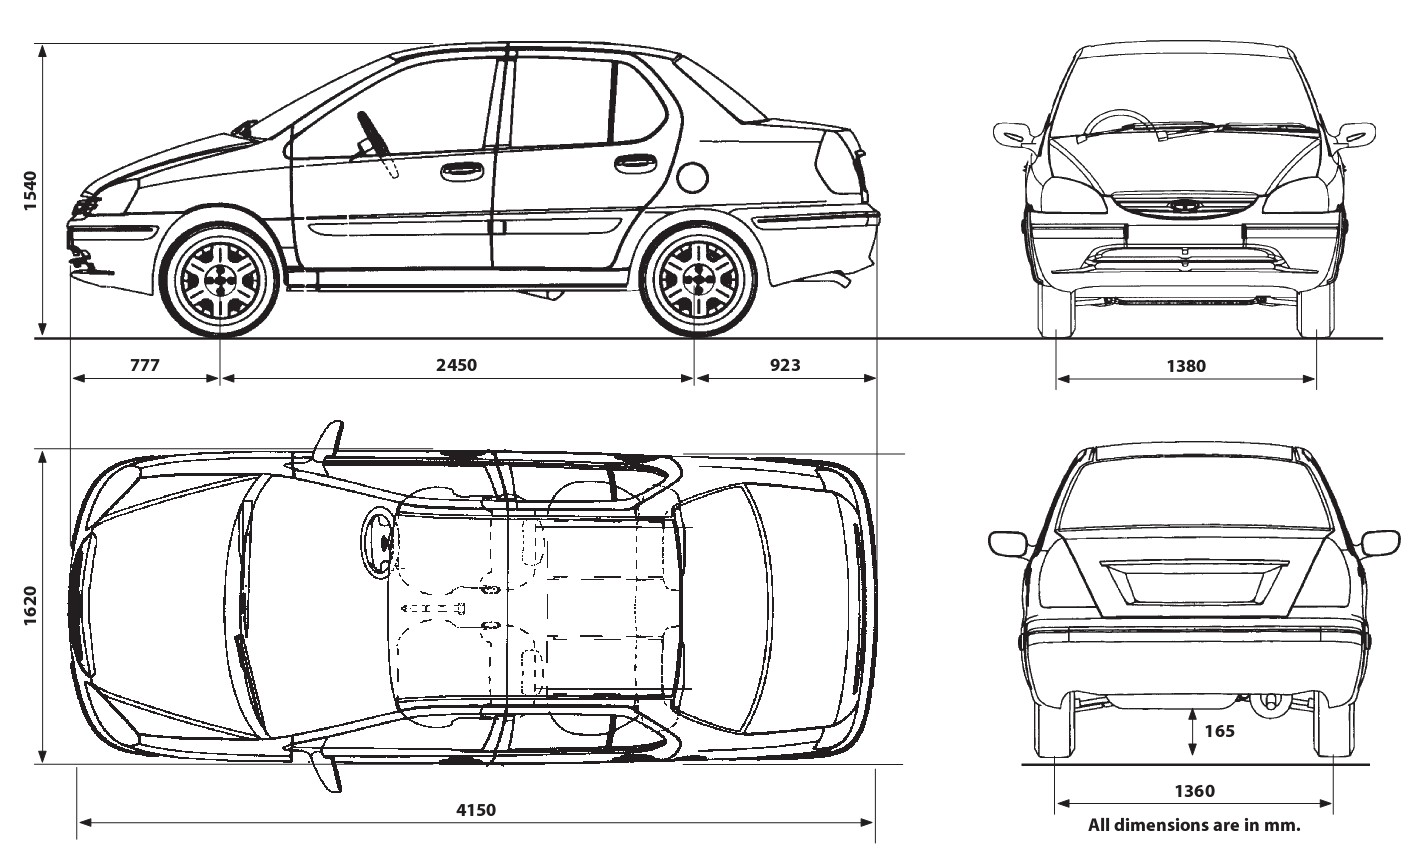 Bmw 330i Fuse Box Diagram Furthermore 1986 Ford Truck Wiring Diagram